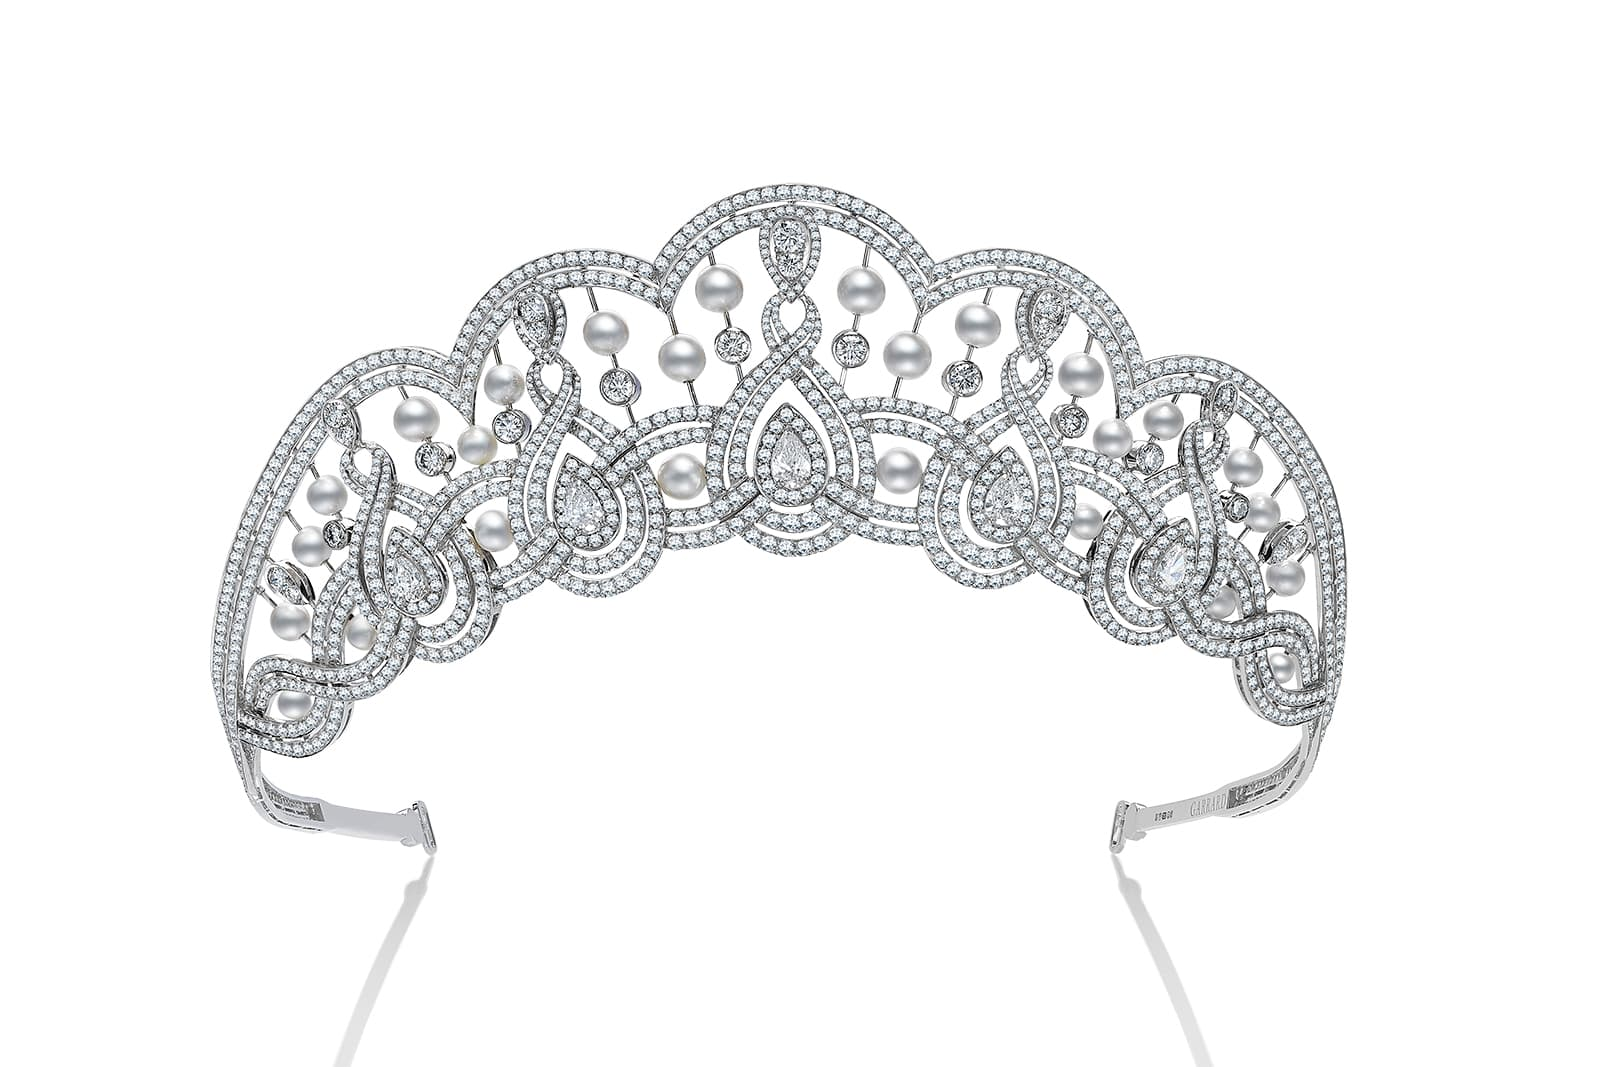 Garrard tiara with pearls and diamonds in white gold